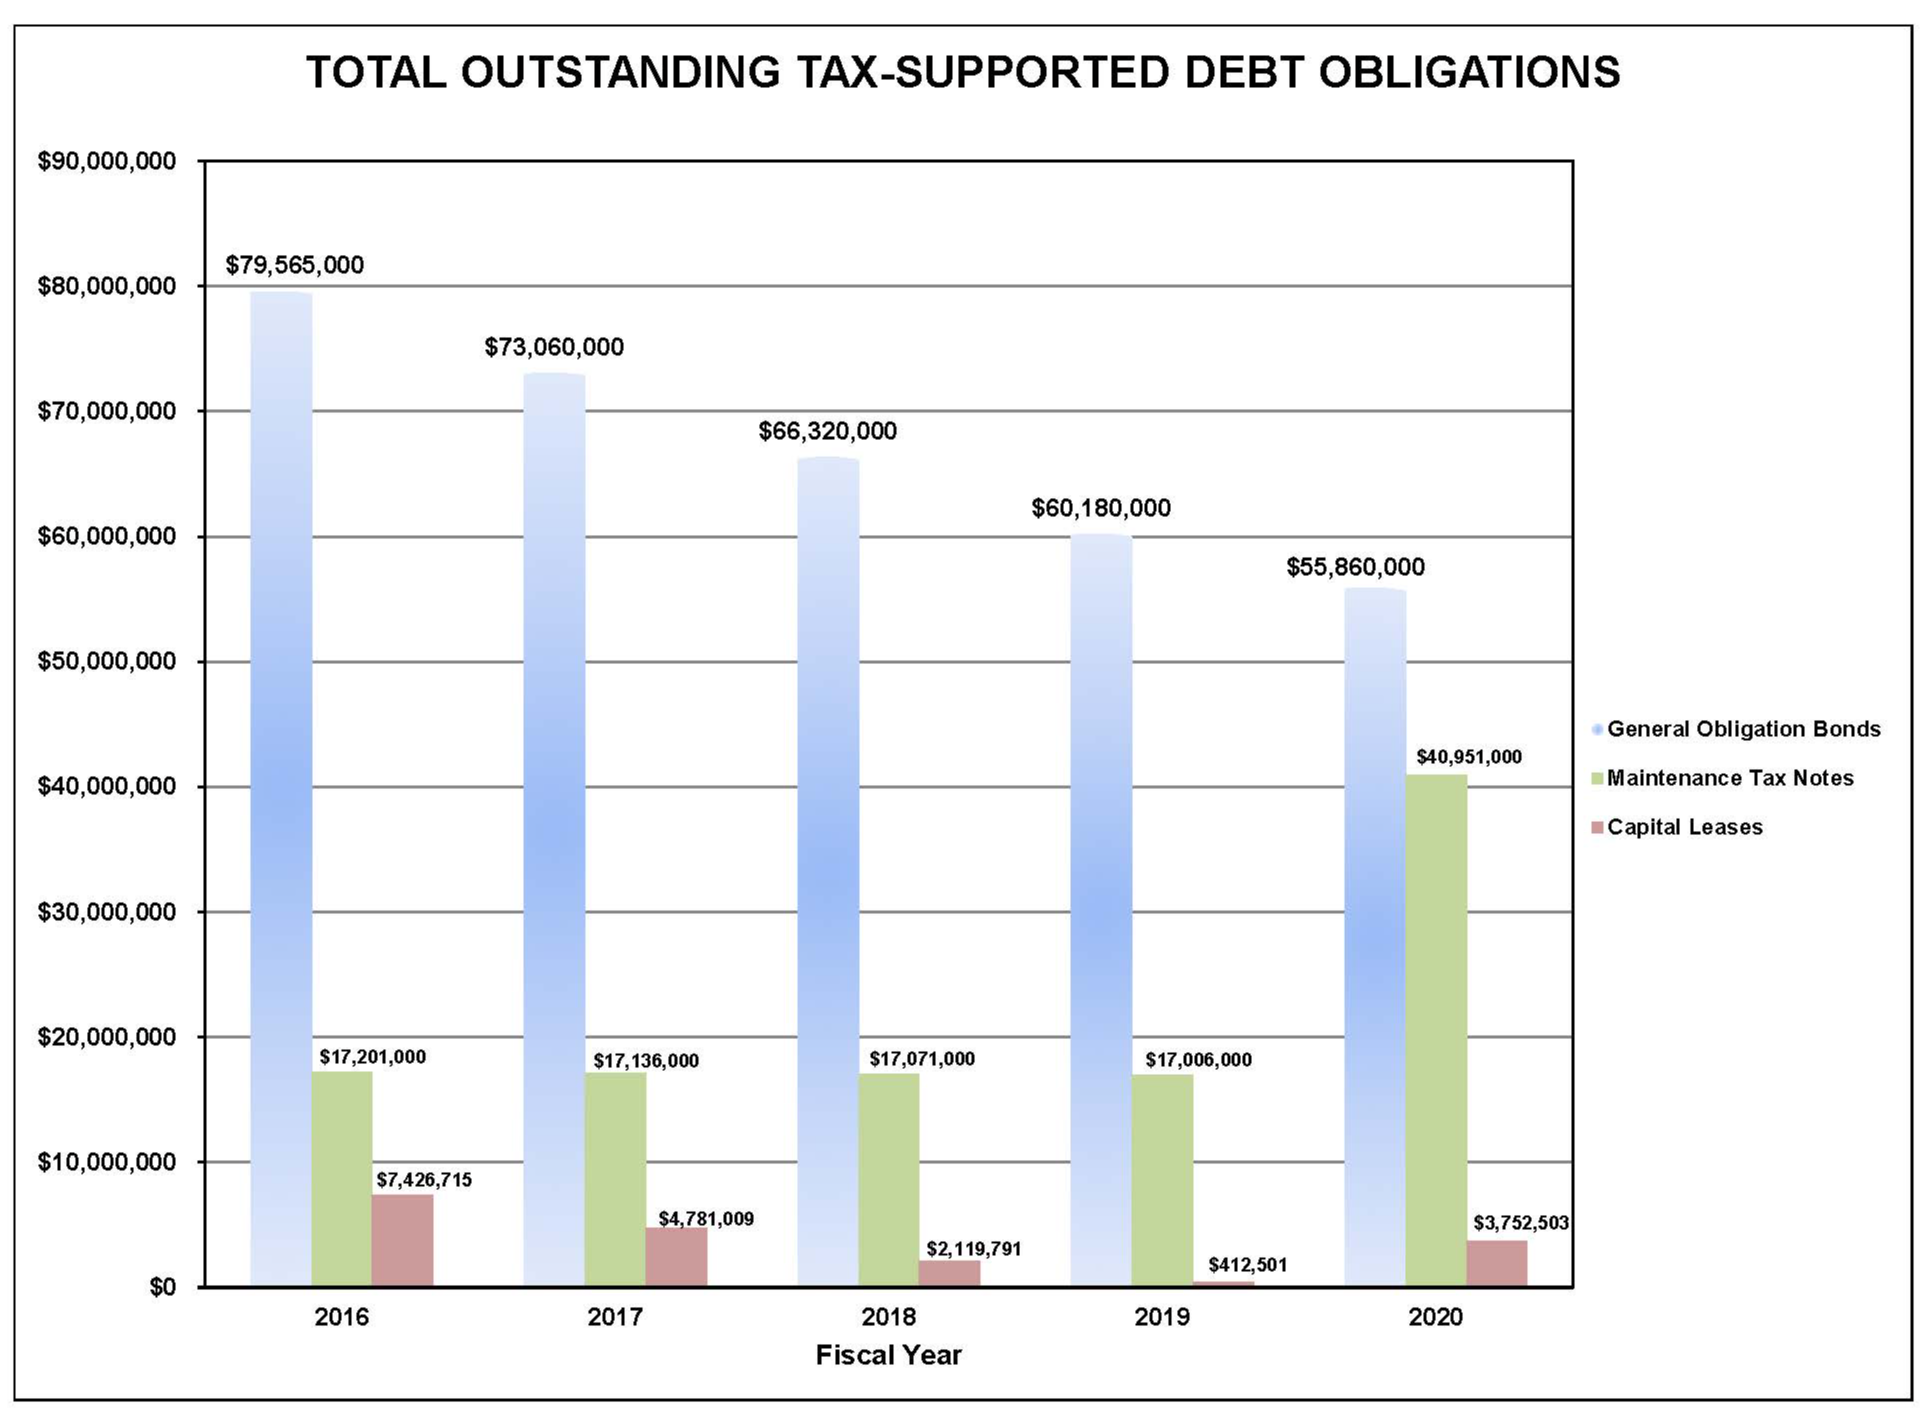 Total Outstanding Tax-Supported Debt Obligations